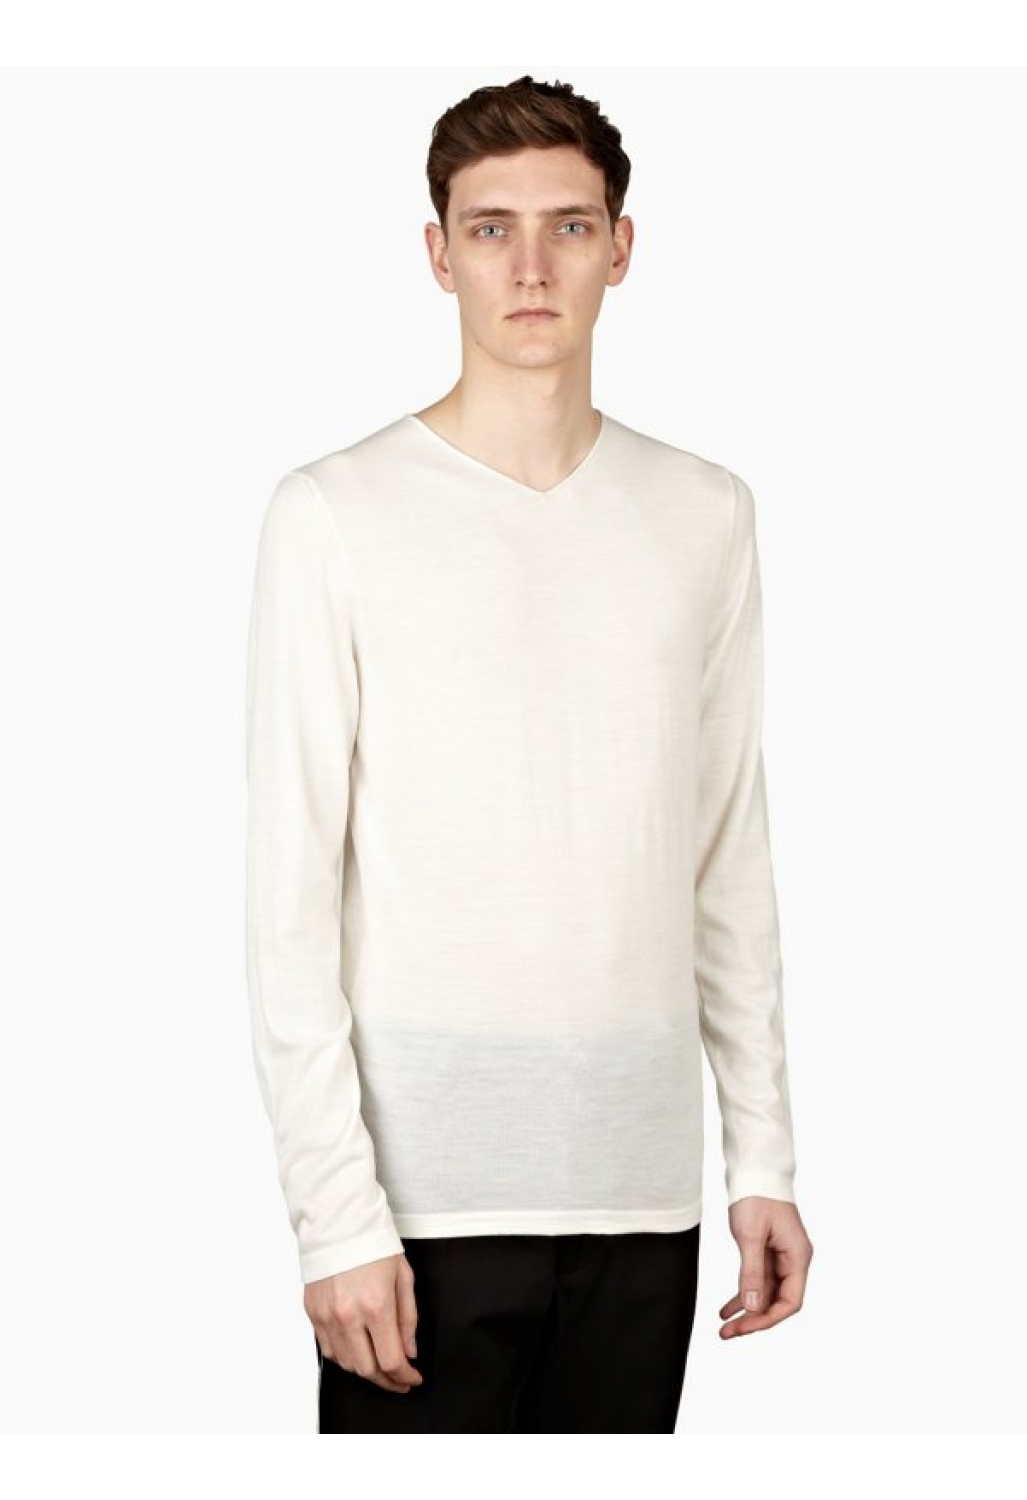 jil sander mens white classic v neck sweater in beige for. Black Bedroom Furniture Sets. Home Design Ideas